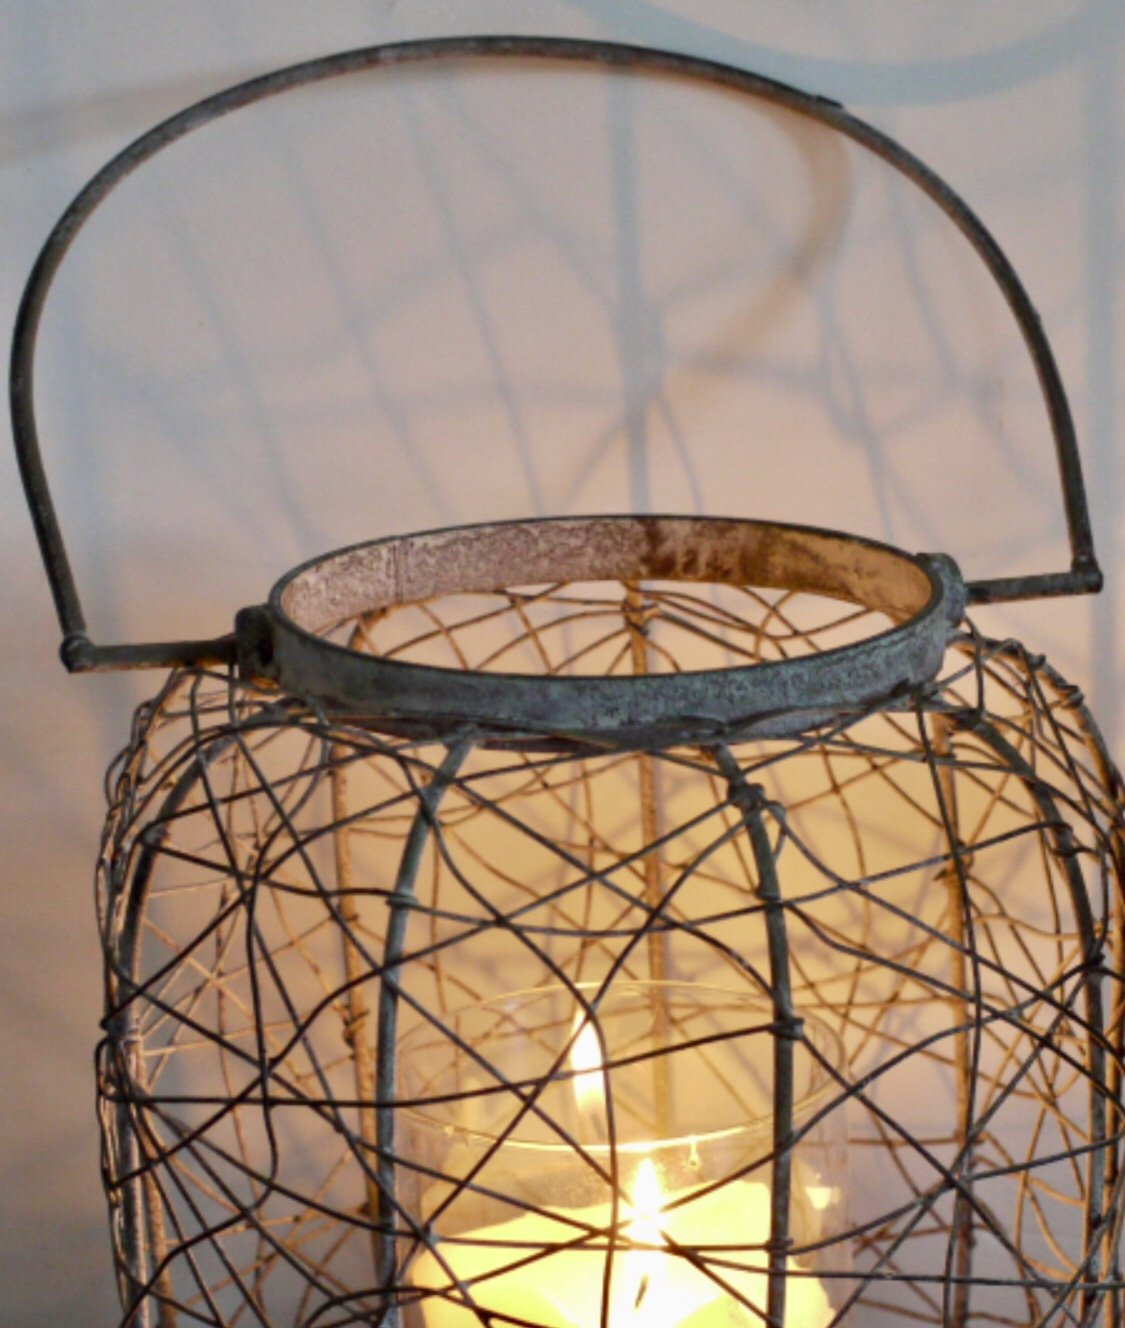 Dutch Imports Distressed Vintage Grey Metal Lantern Metal Pillar Candle Holder 35cm